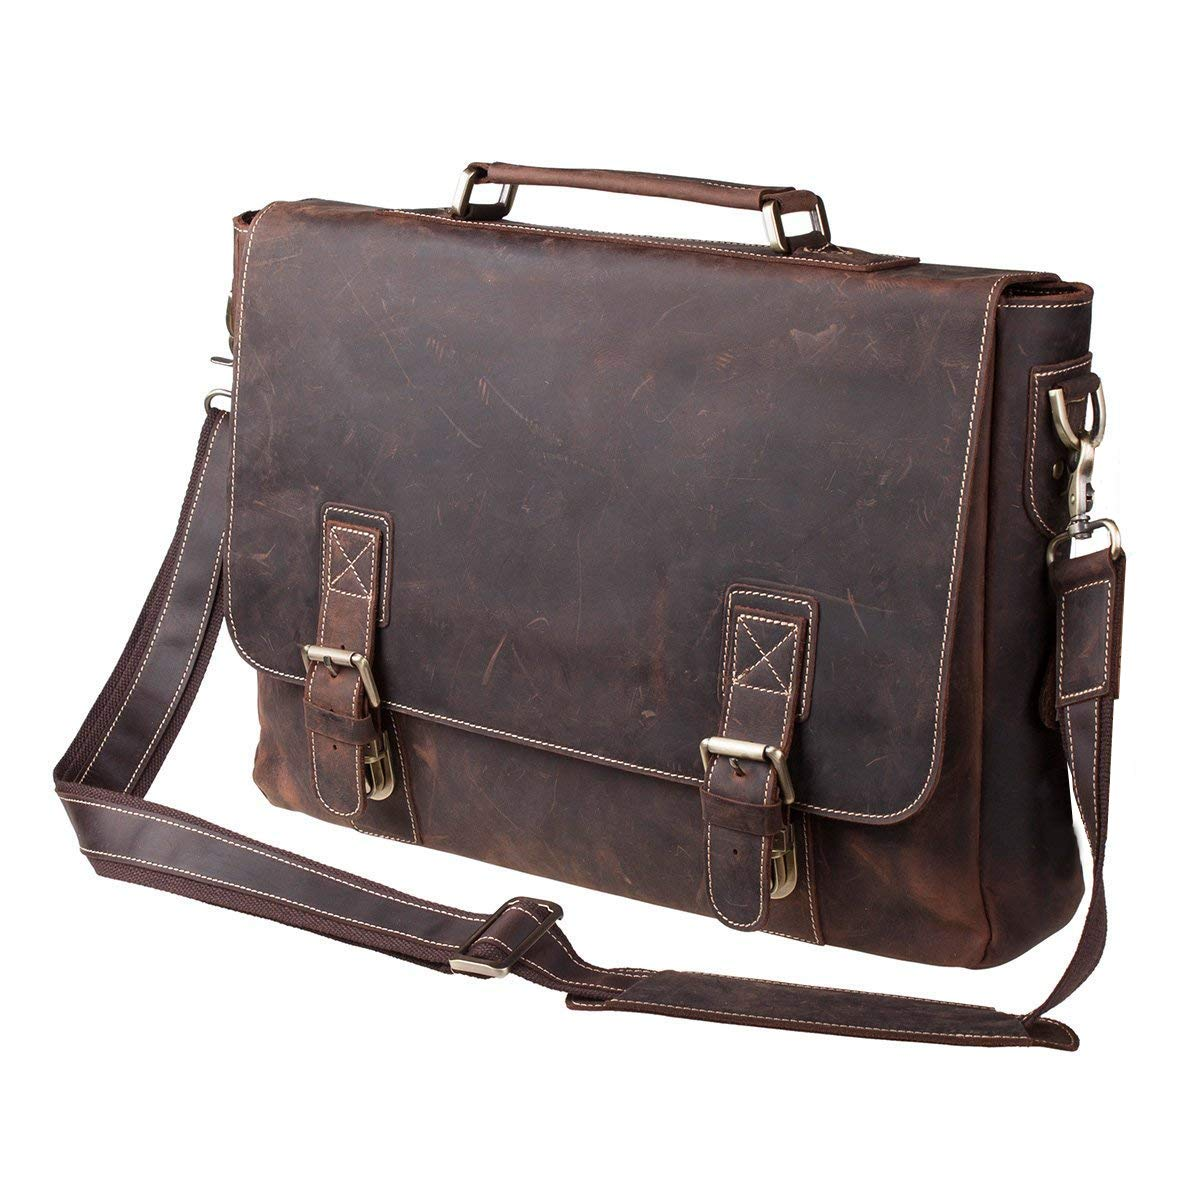 "S-ZONE Handmade Vintage Crazy Horse Leather 15.6"" Laptop Briefcase Messenger Bag Shoulder Satchel Bag"